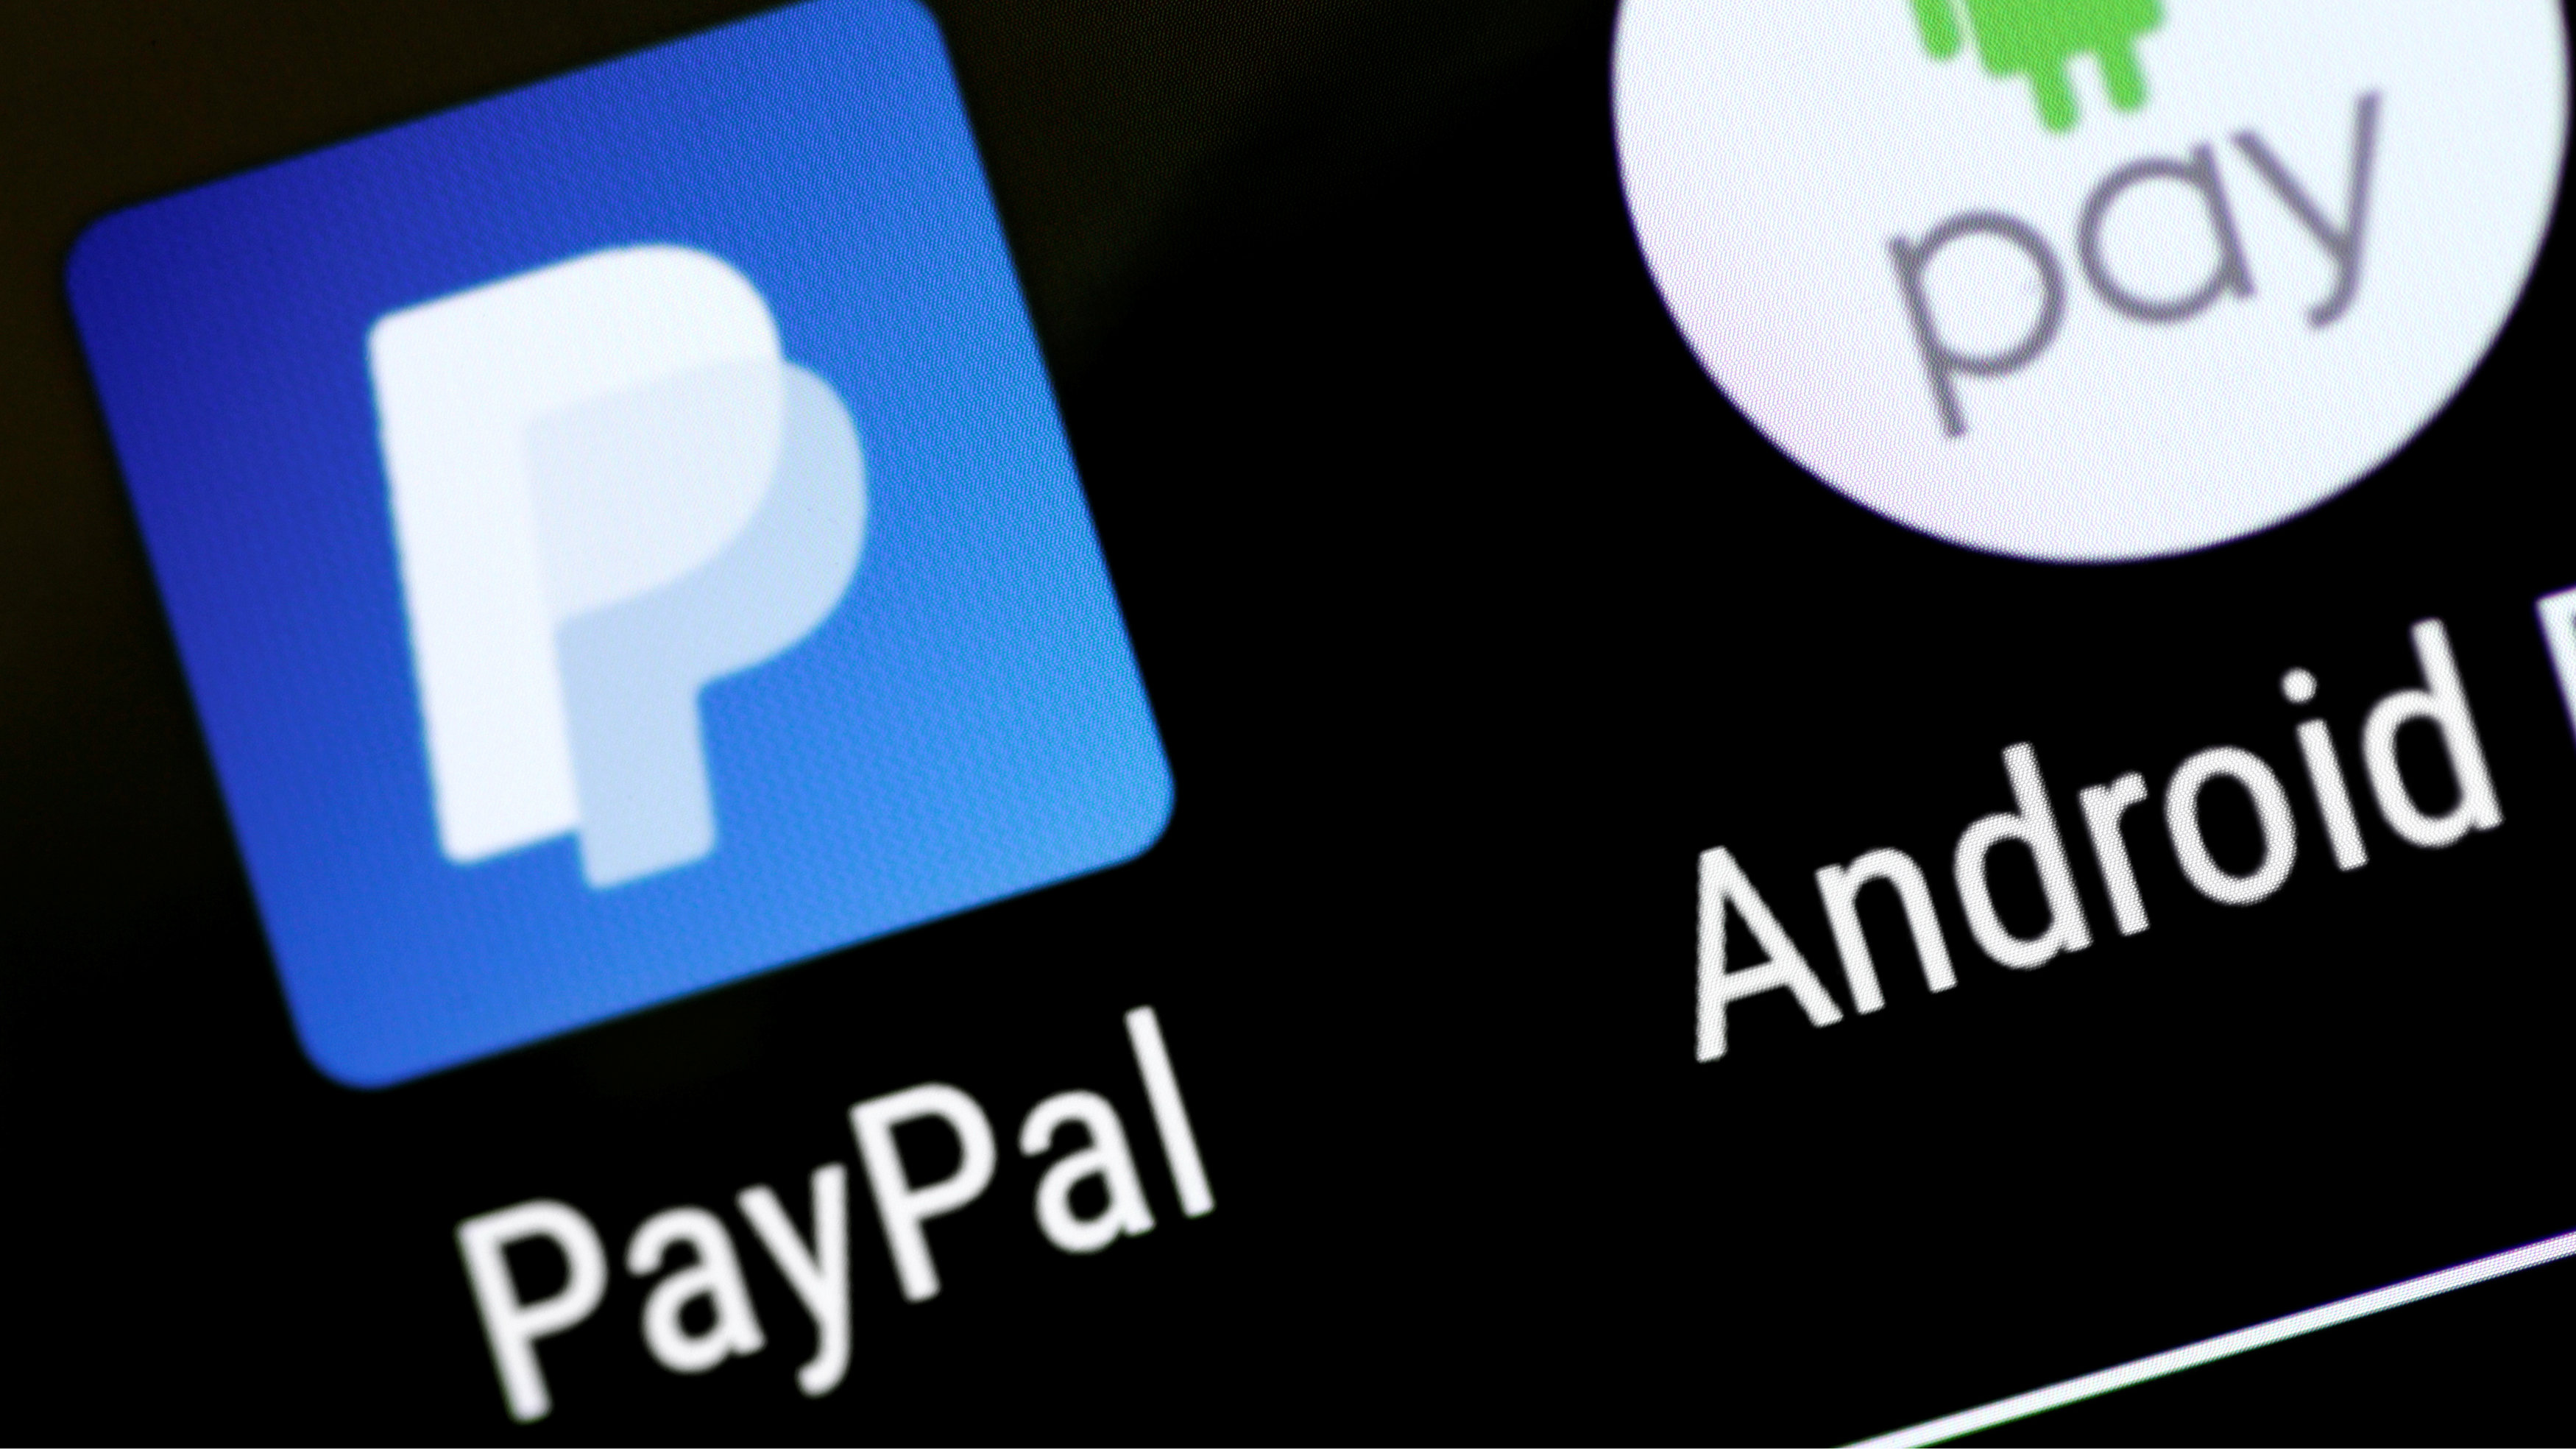 PayPal (PYPL) is now worth more than American Express (AXP